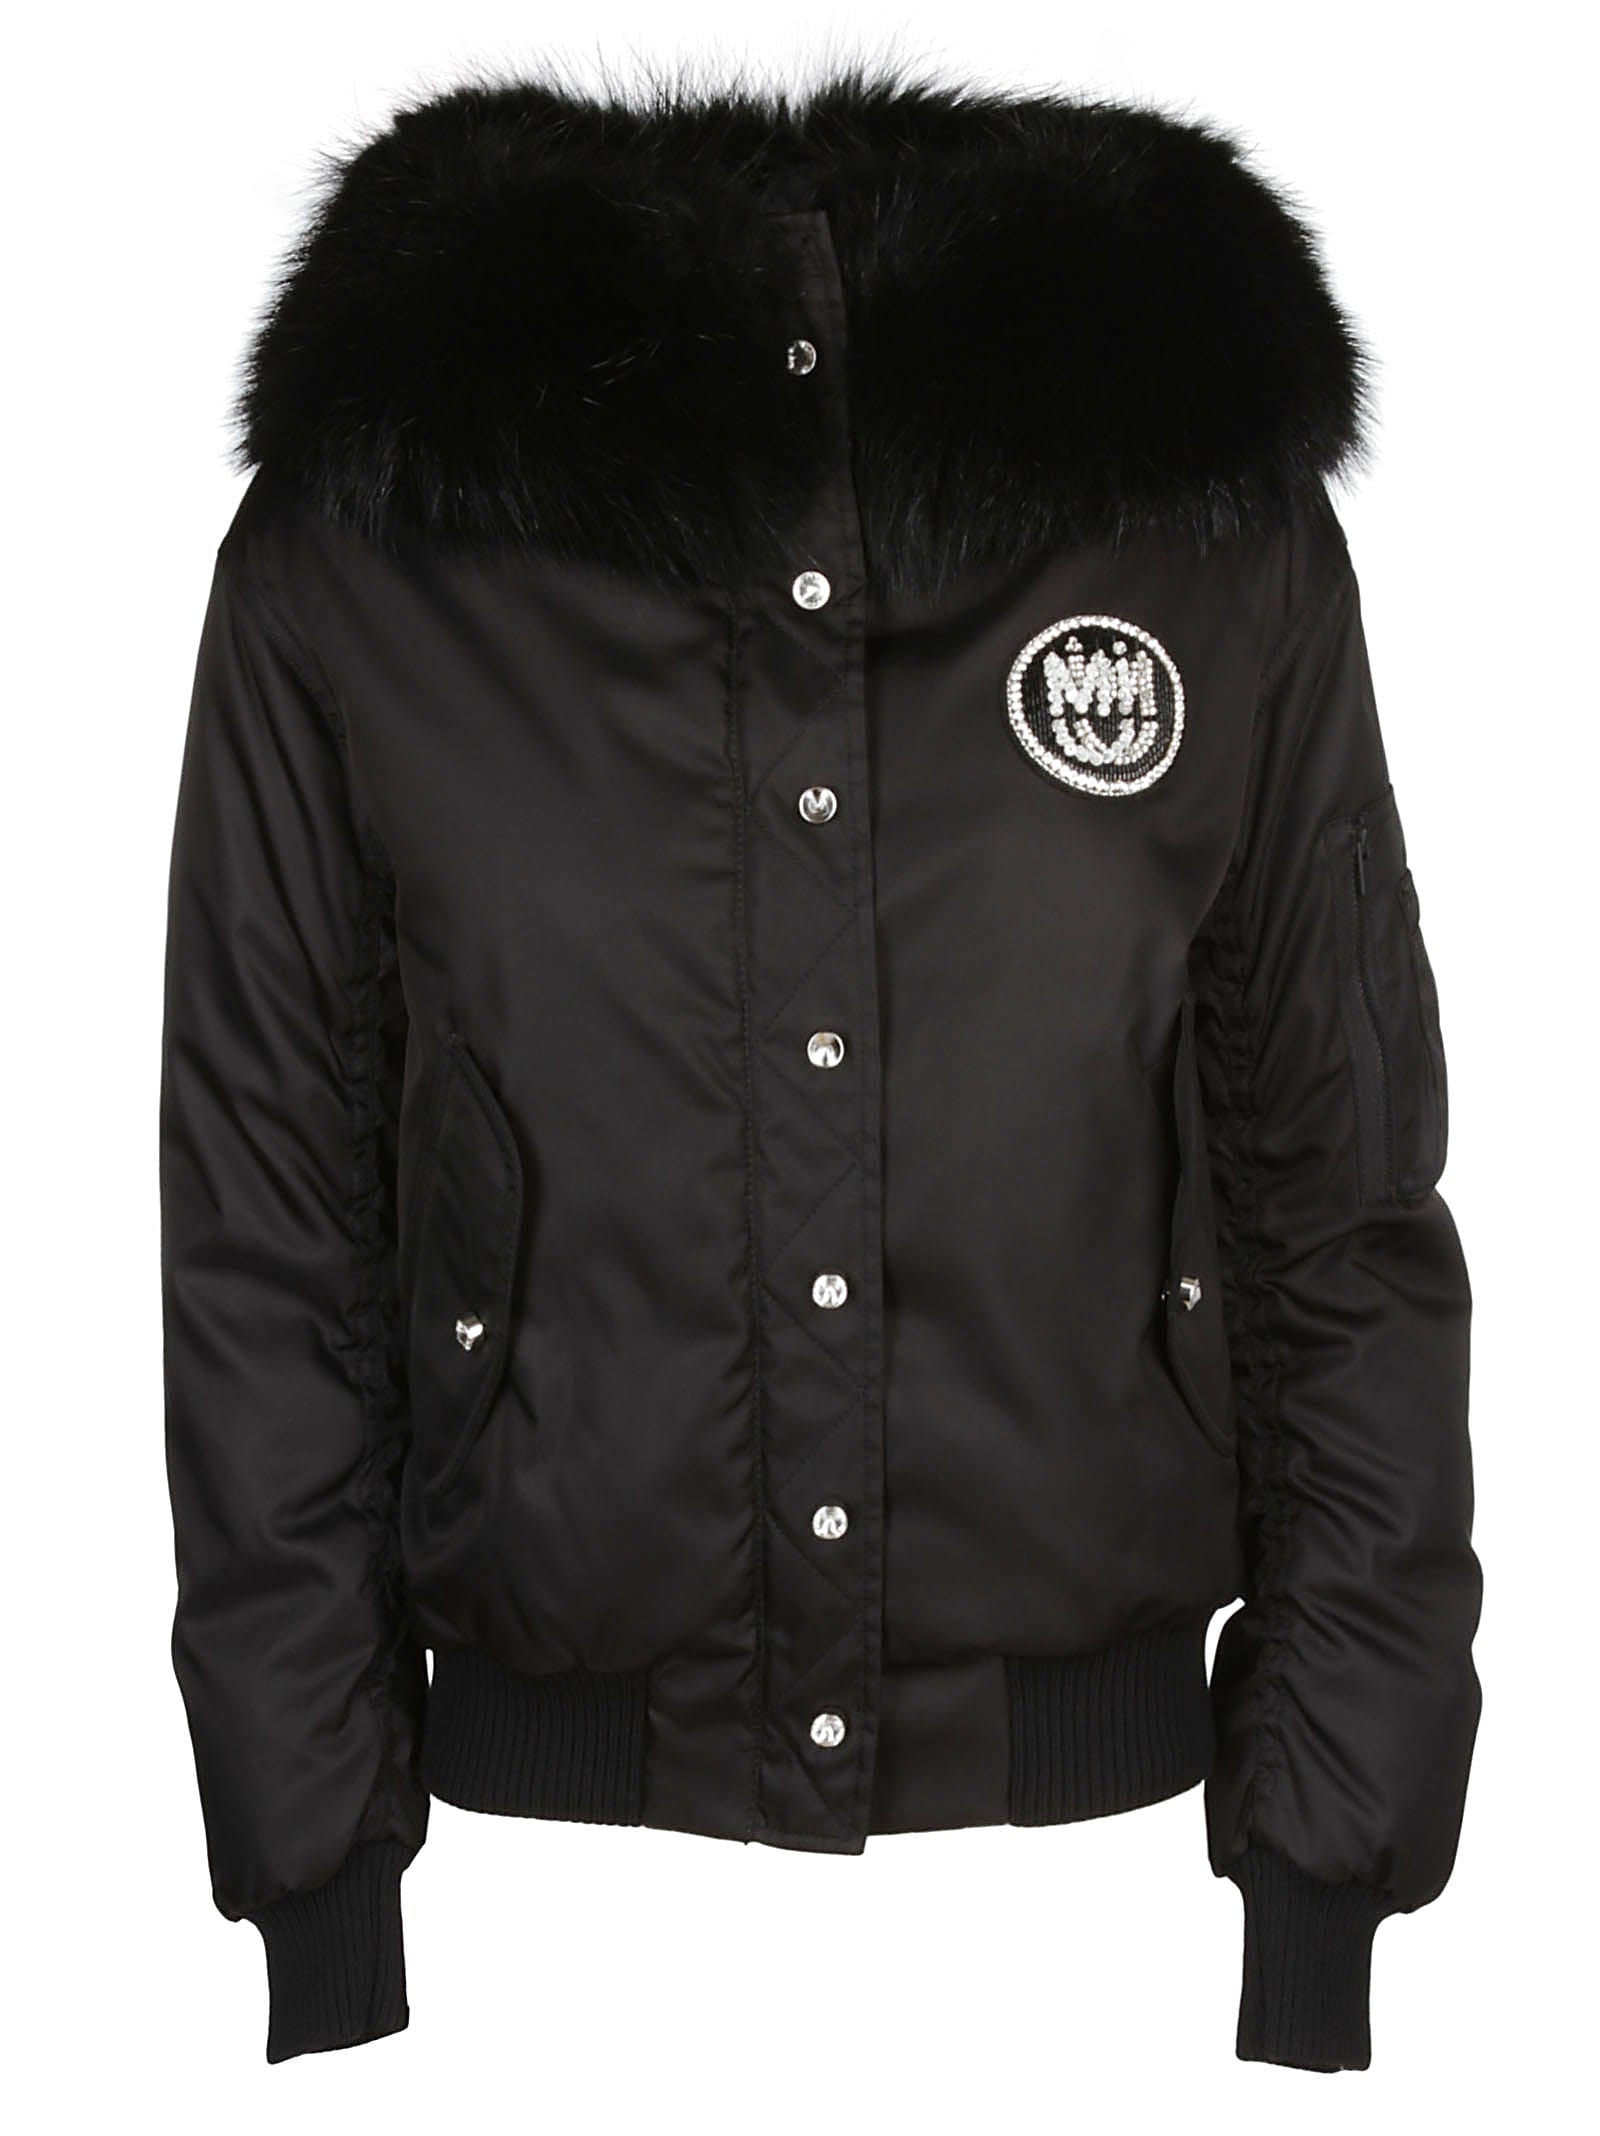 Miu Miu Hooded Down Jacket